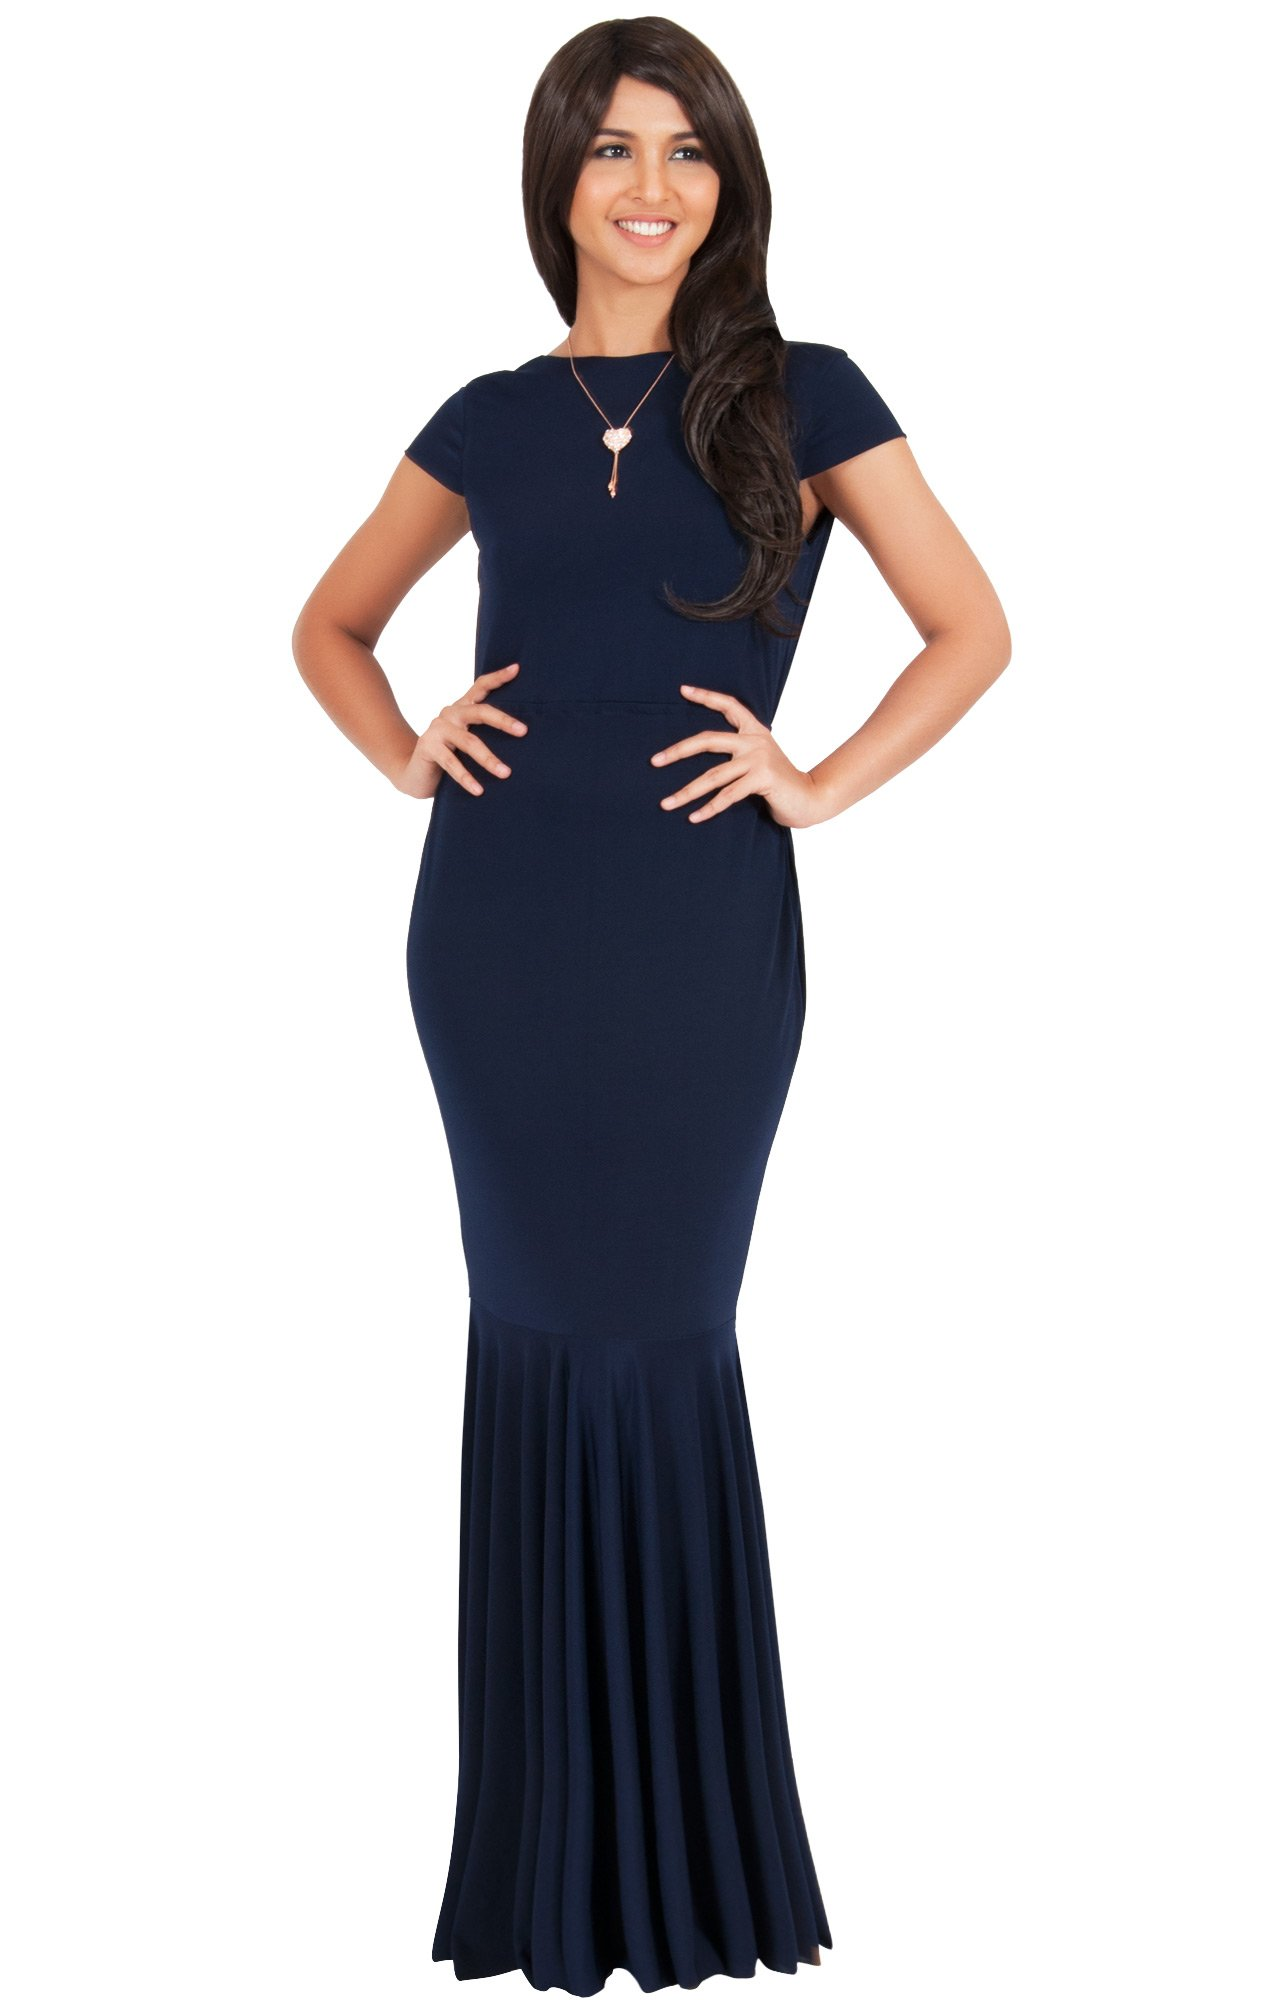 KOH KOH Womens Long Cap Short Sleeve Formal Sexy Evening Prom Cocktail Bridesmaids Wedding Party Guest Tube Flowy Cute Fishtail Gown Gowns Maxi Dress Dresses, Navy Blue M 8-10